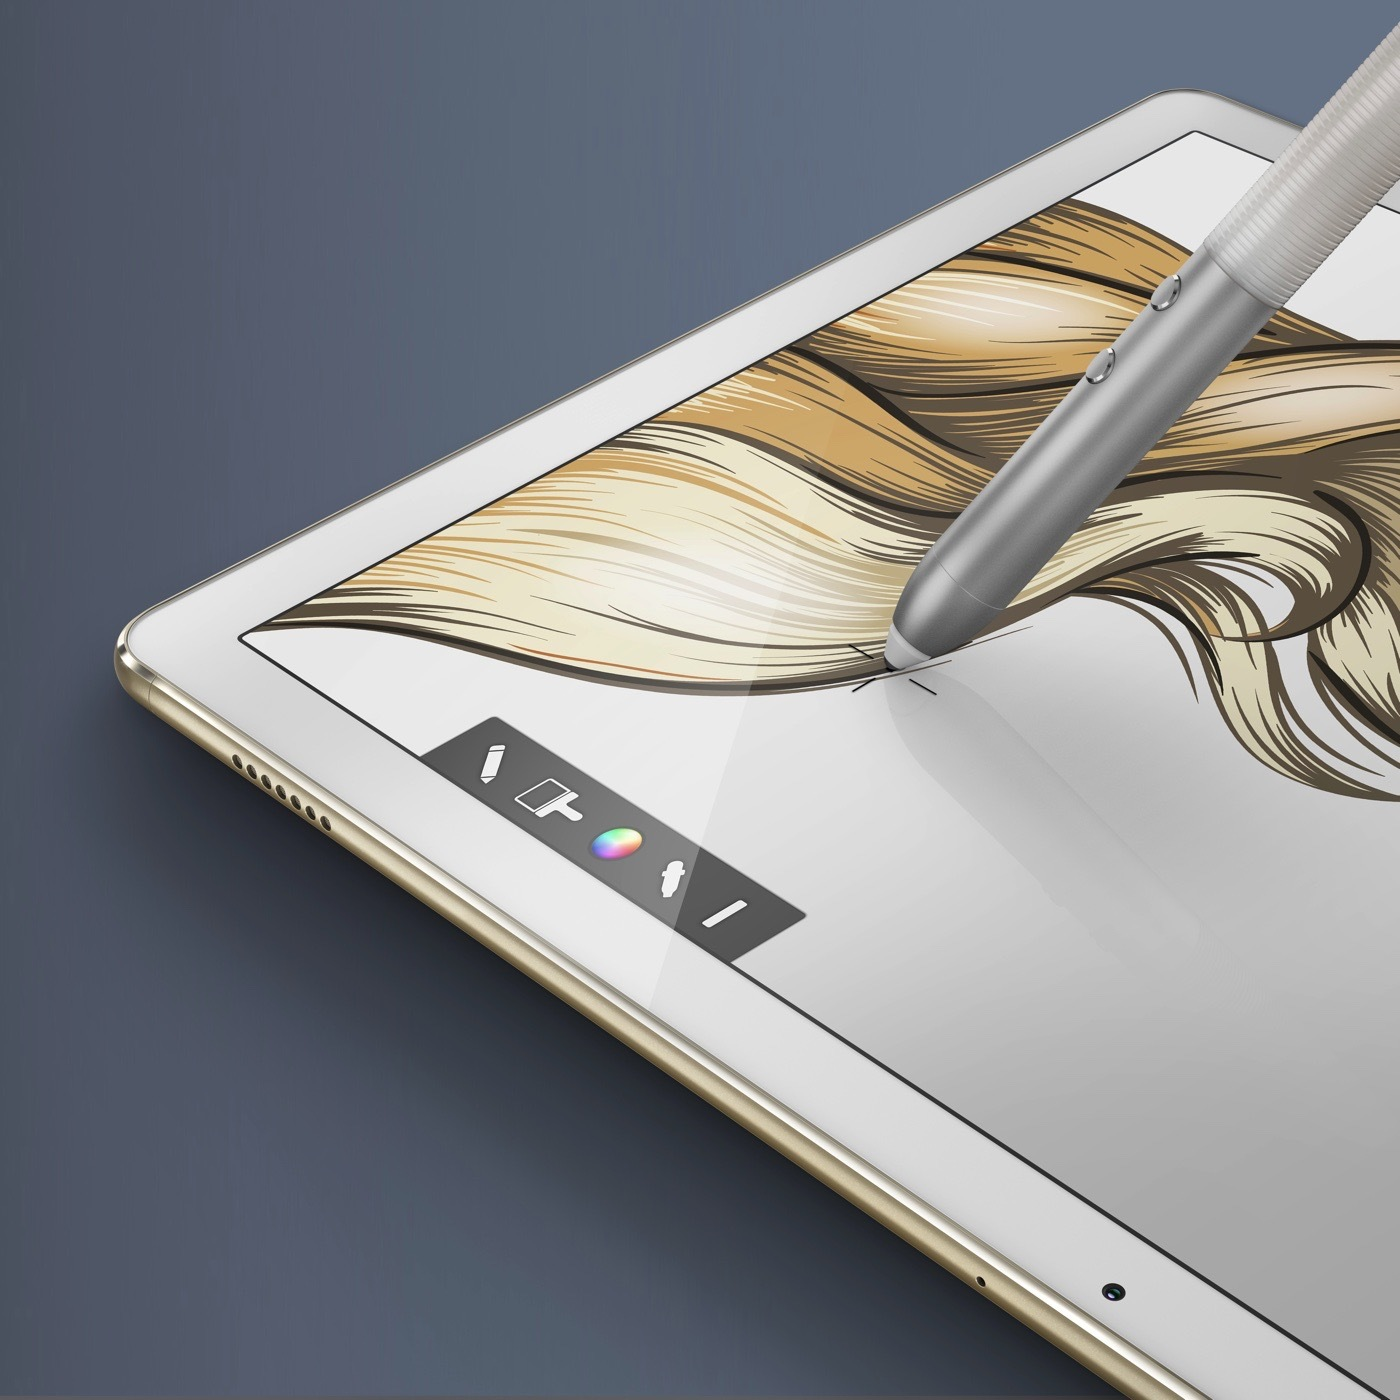 Huawei MateBook Vs Surface Pro 4: Specifications Comparison And Deciding Which Machine Is Better